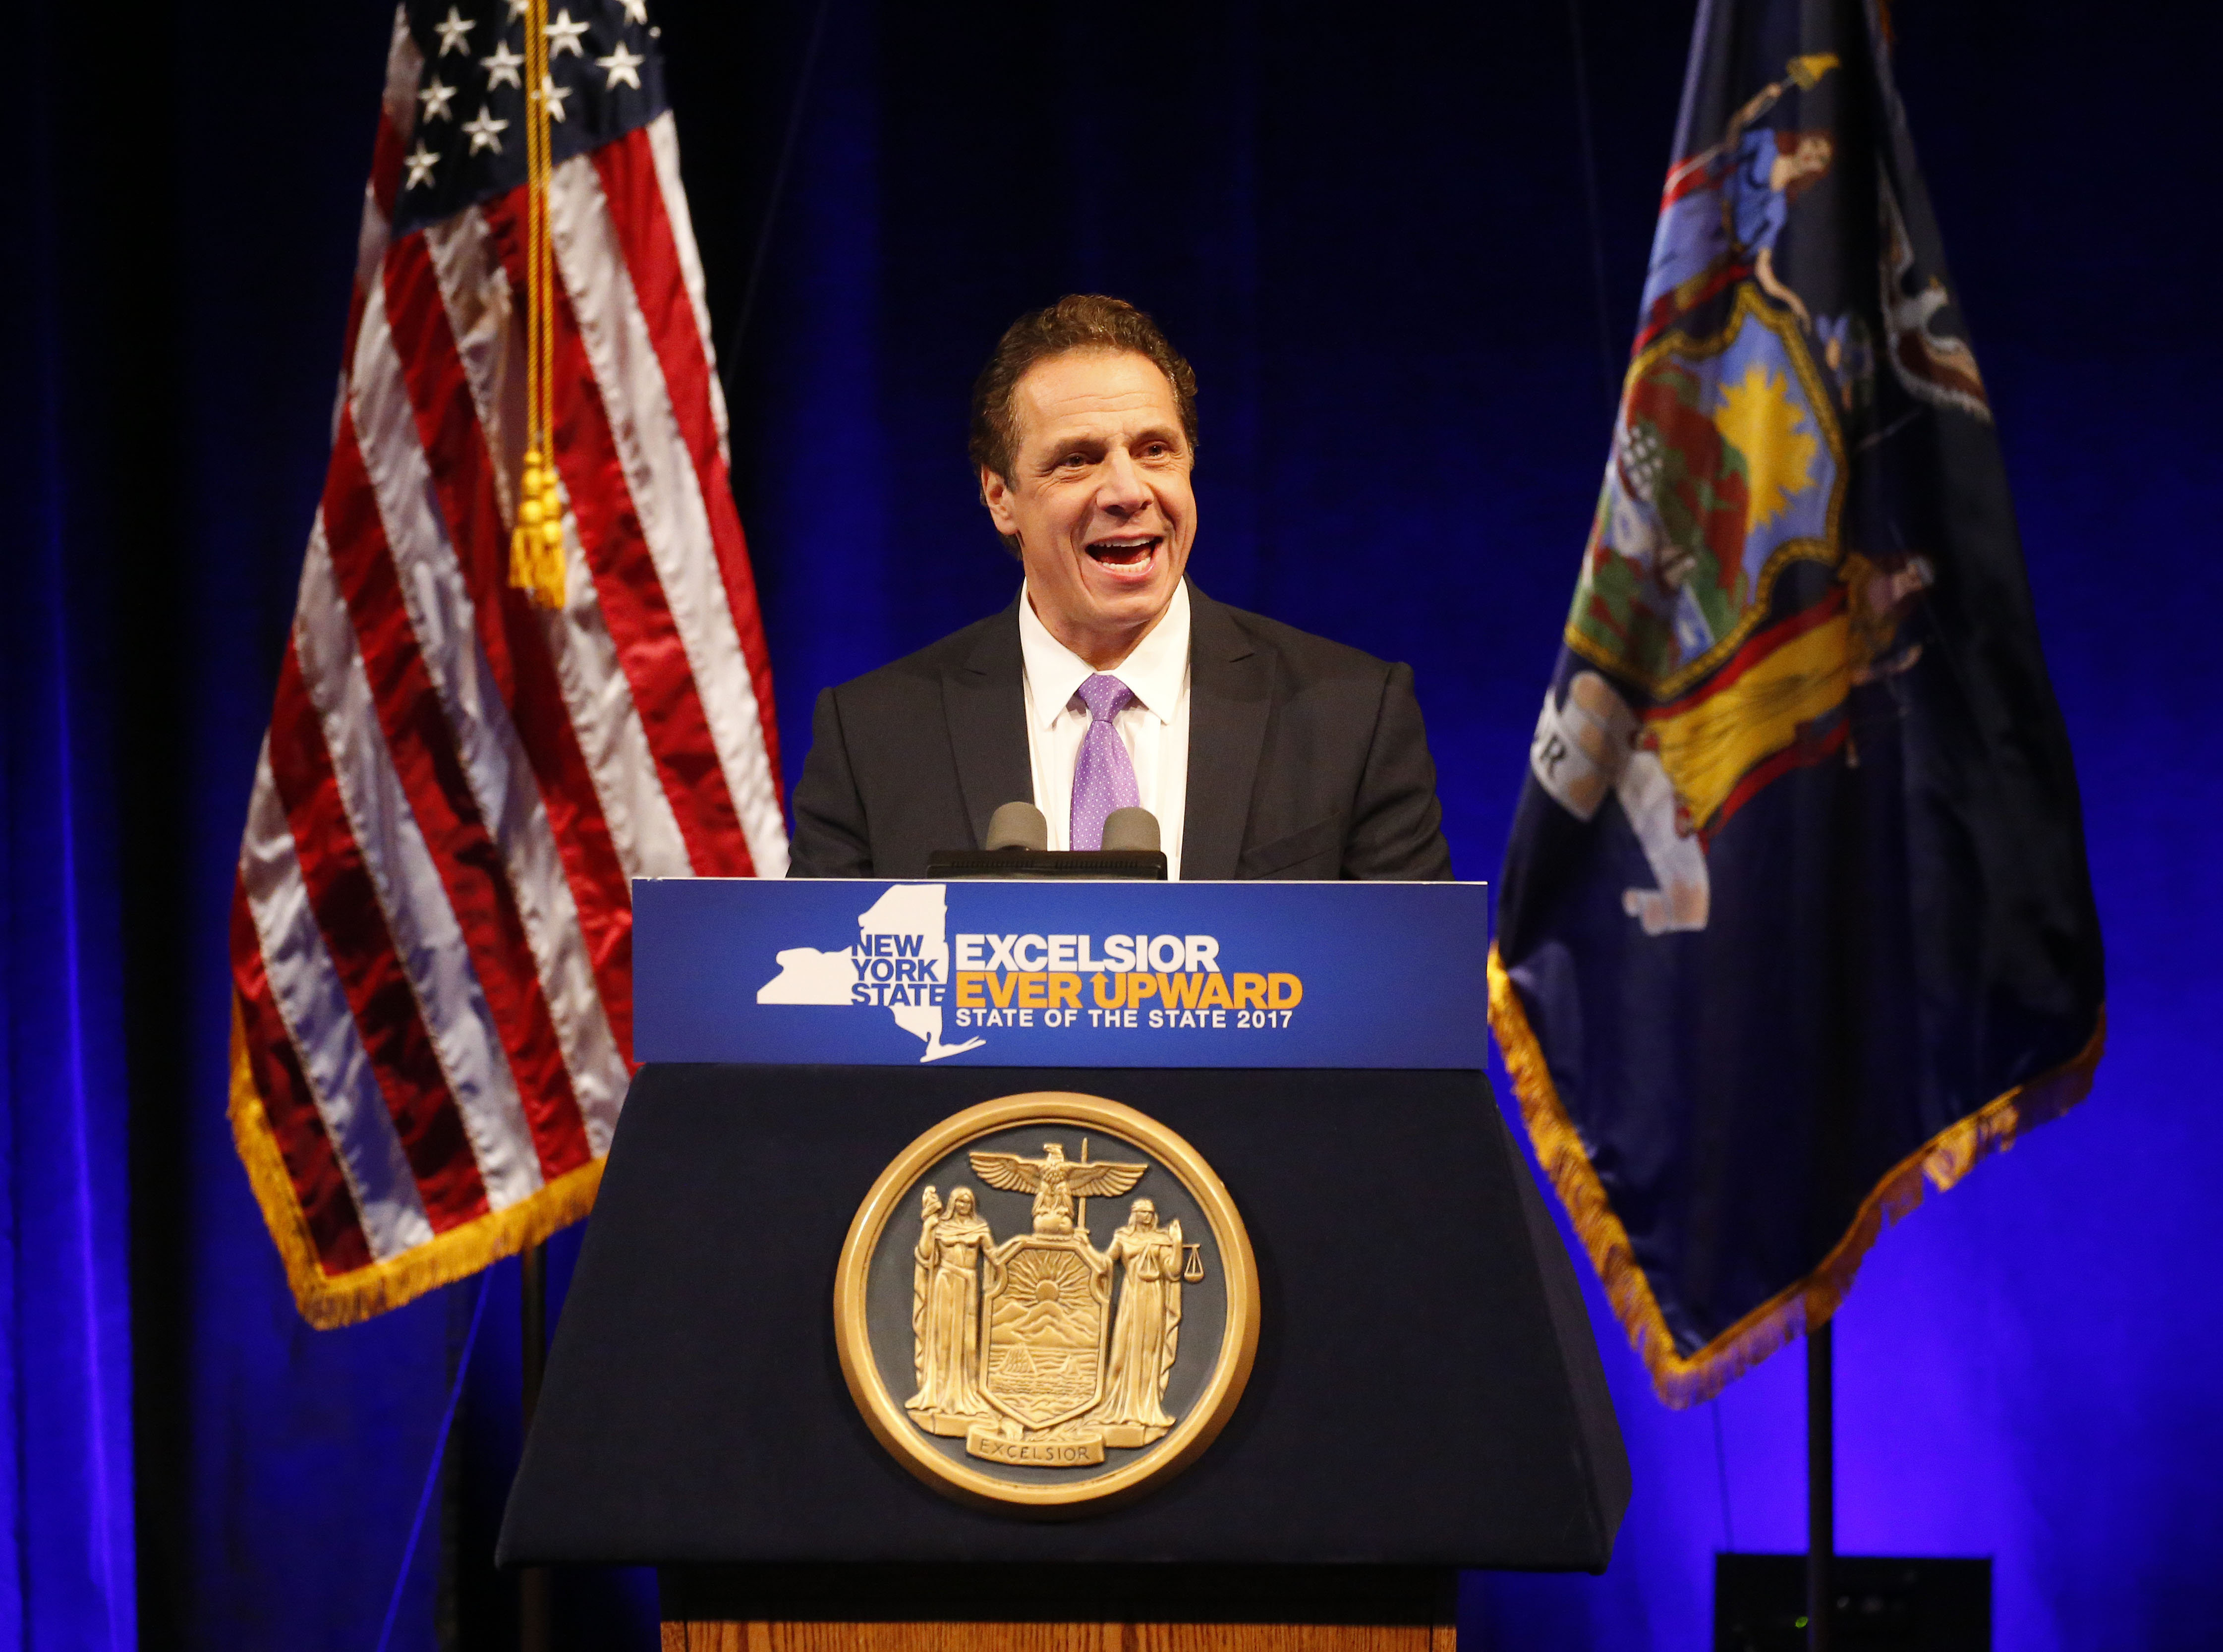 Gov. Andrew Cuomo gives his State of the State address at the University at Buffalo  Center for the Arts in Amherst Monday, January 9, 2017.  (Mark Mulville / The Buffalo News)